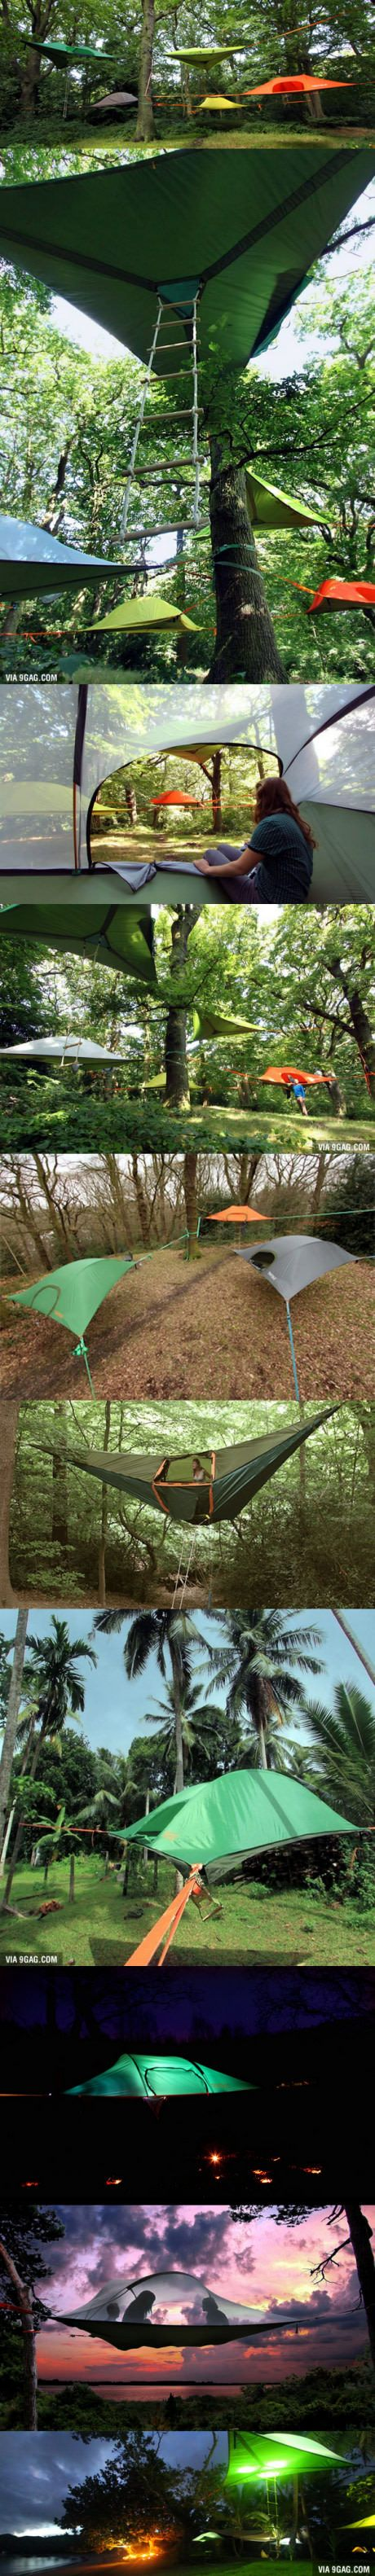 Tree tents!                                                                                                                                                                                 More